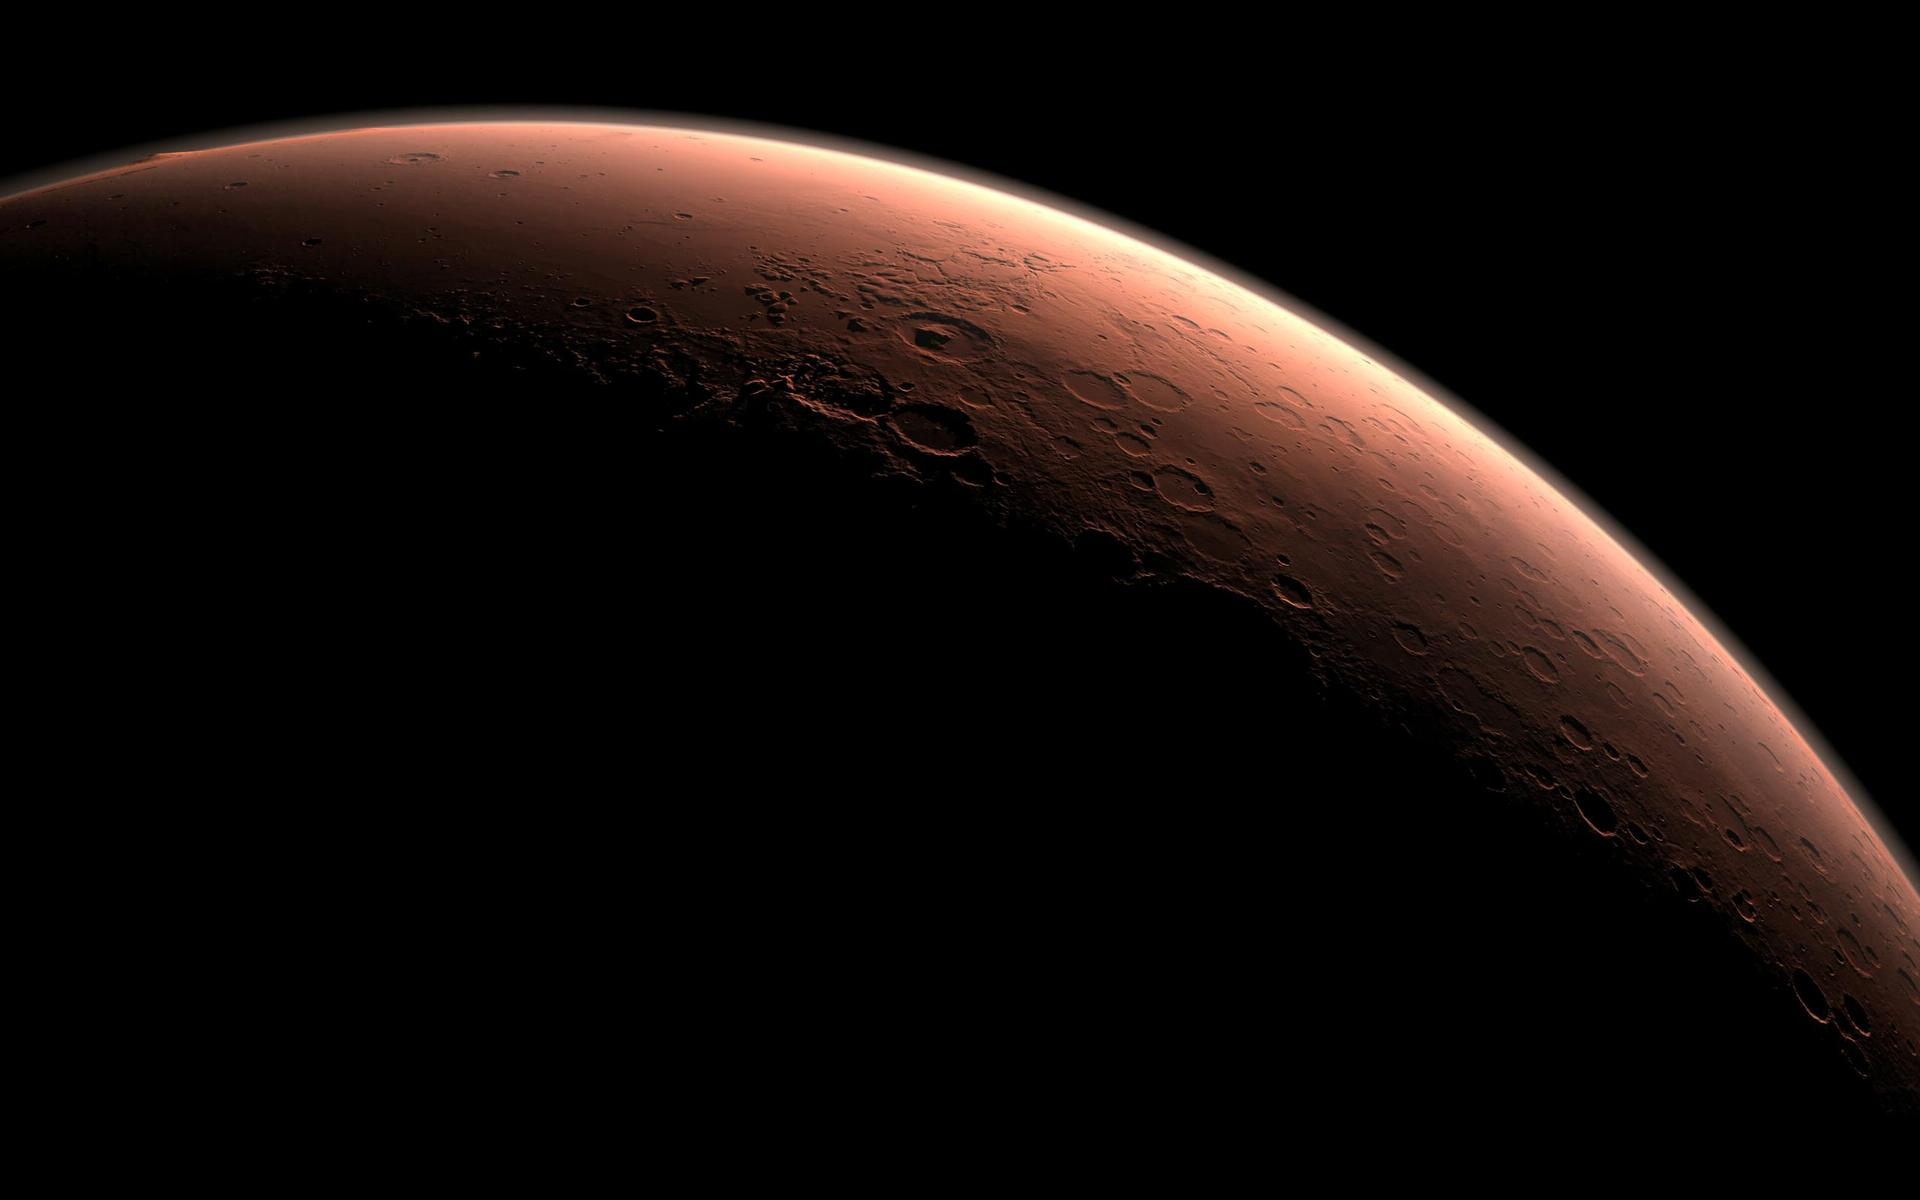 Mars Planet Wallpaper 48837 1920x1200 px ~ HDWallSource com